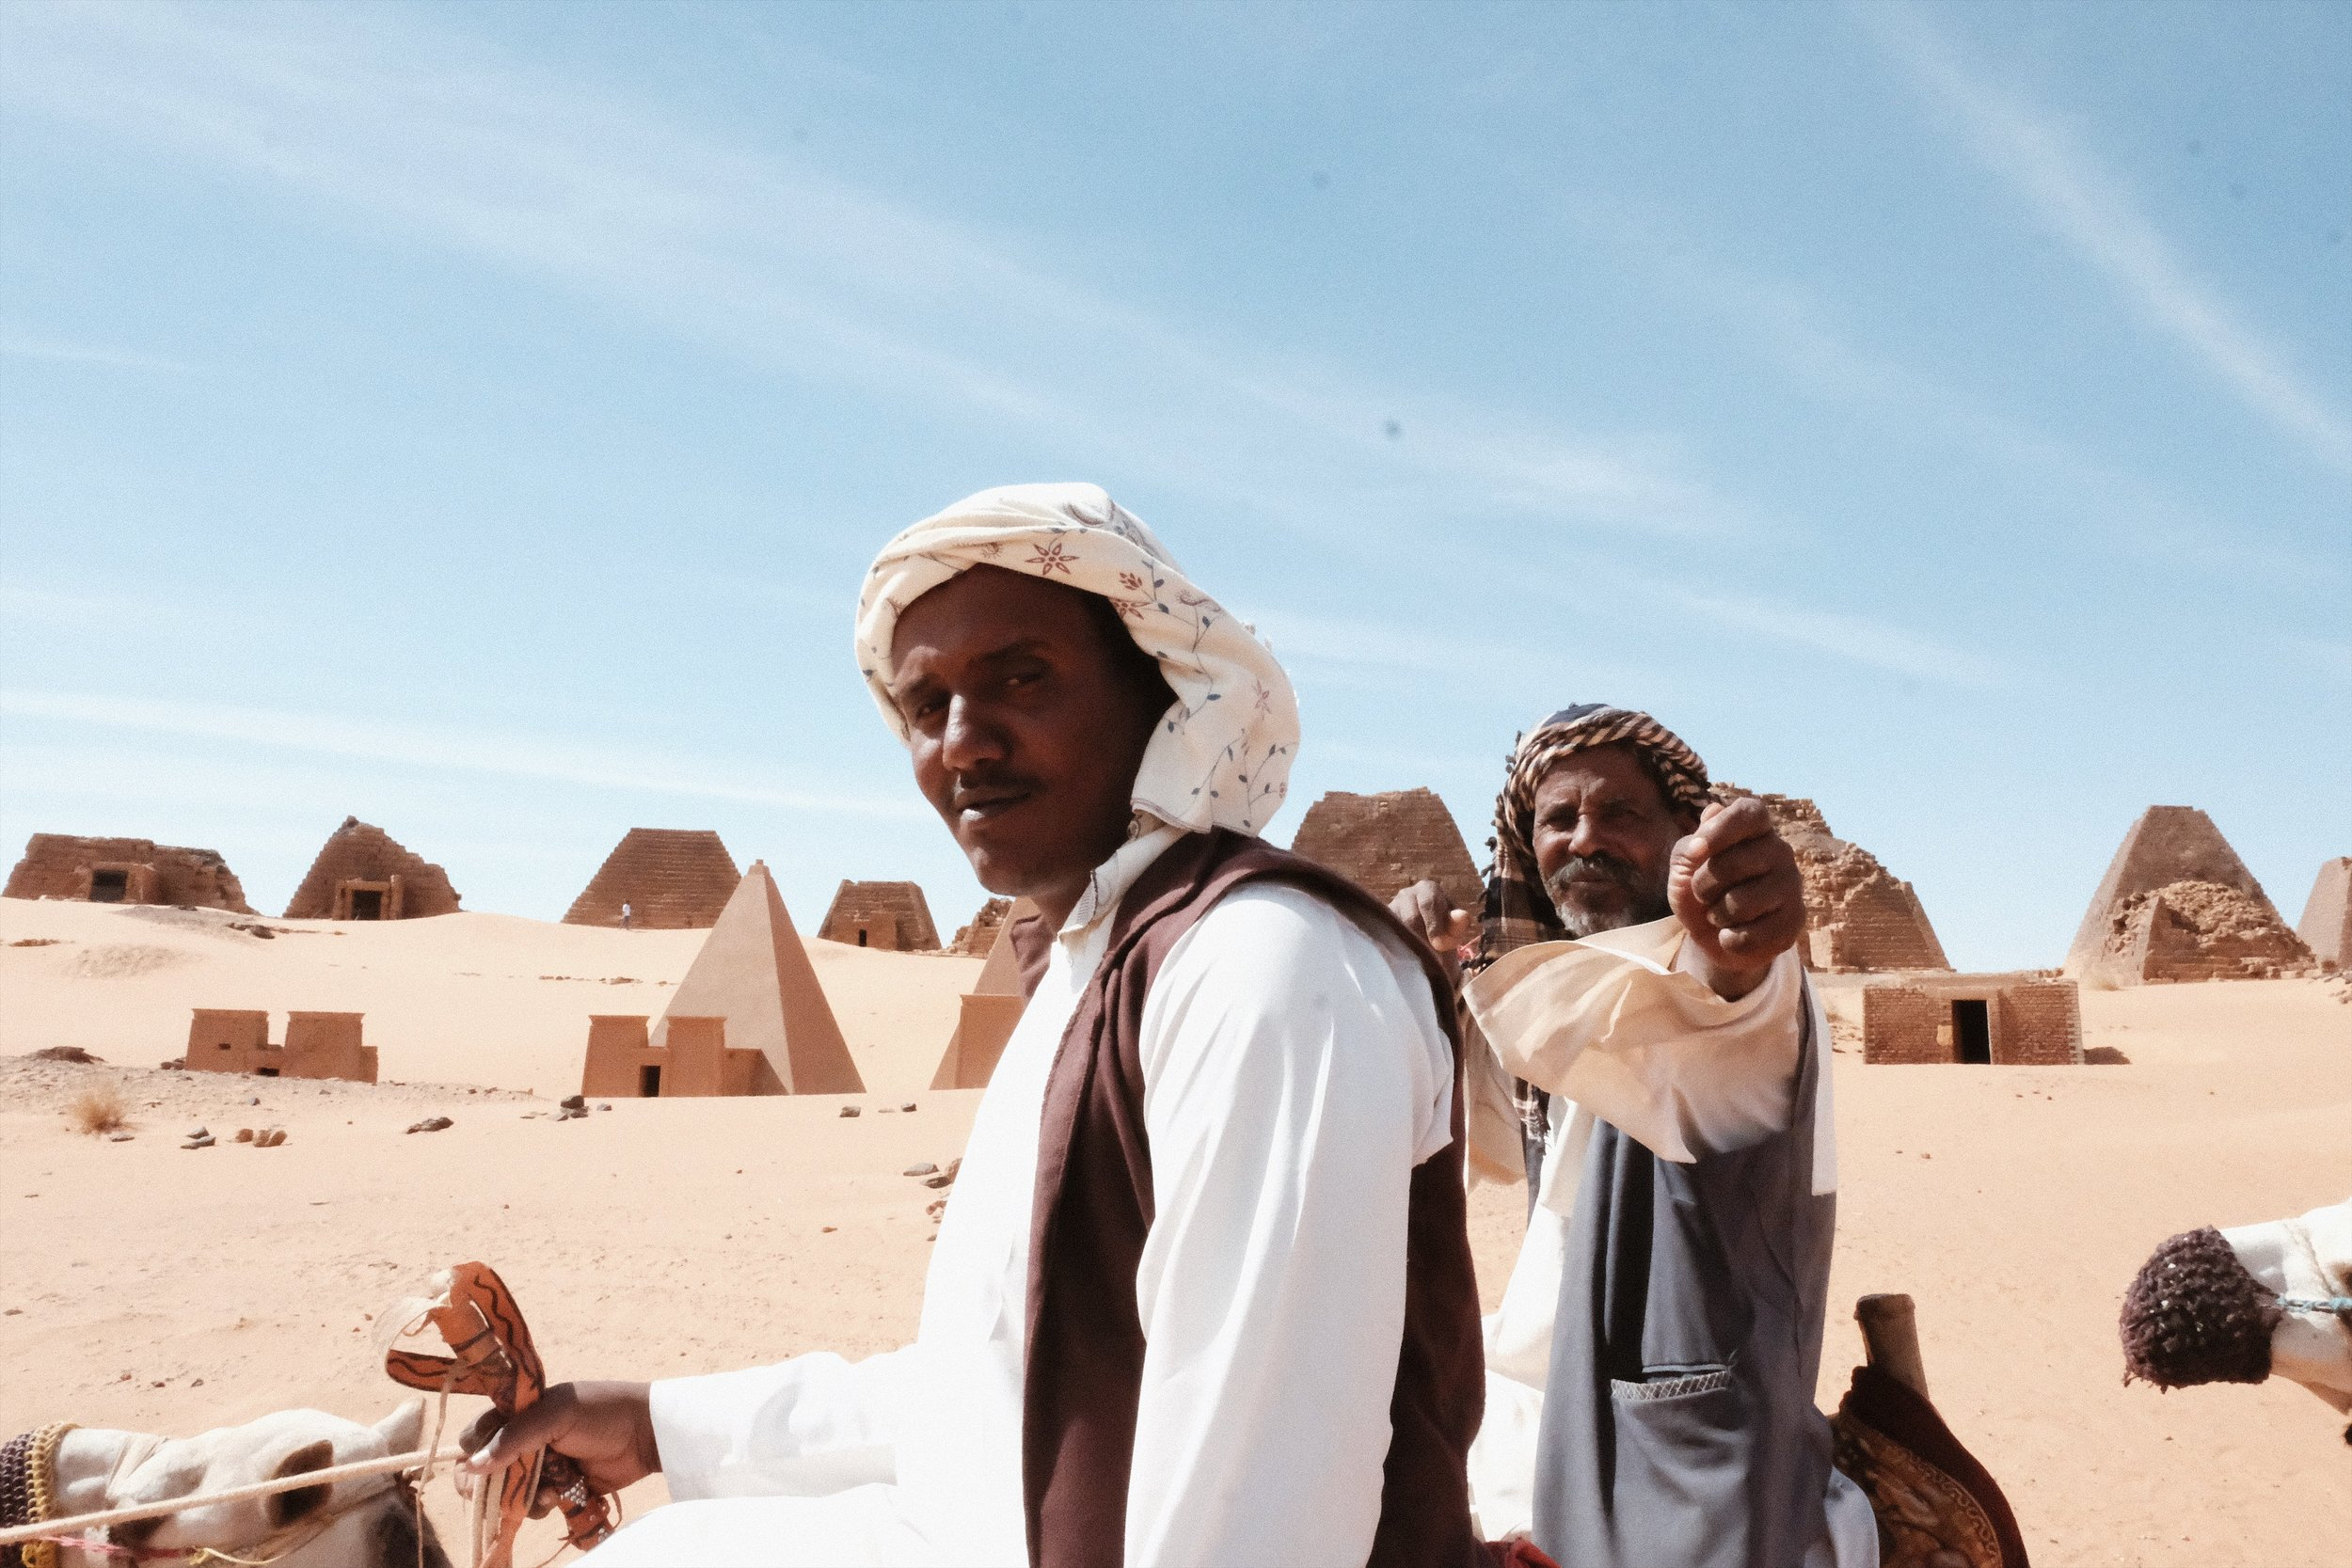 Sekka Magazine: The Nubian Pyramids of Meroe - My fascination with Sudan's little-known ancient history, and the diversity of its historic artefacts, is what motivated me to explore one of Africa's largest, and most underrated, nations. Read more here.